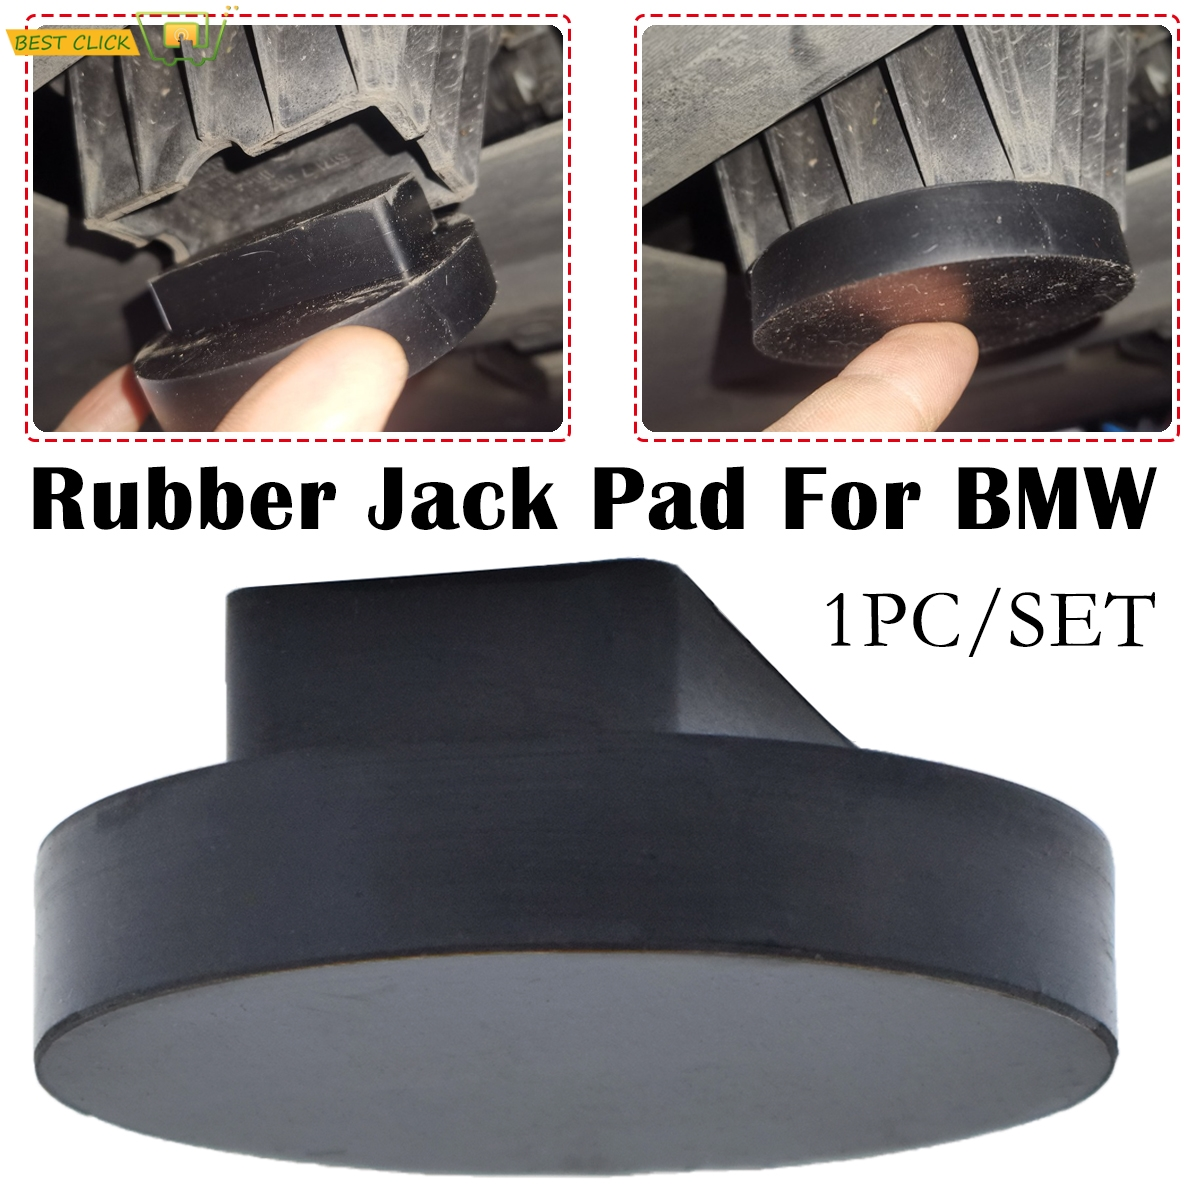 Rubber Jacking Point Jack Pad Adaptor For BMW 3 4 5 Series E46 E90 E39 E60 E91 E92 X1 X3 X5 X6 Z4 Z8 1M M3 M5 M6 F01 F02 F30 F10